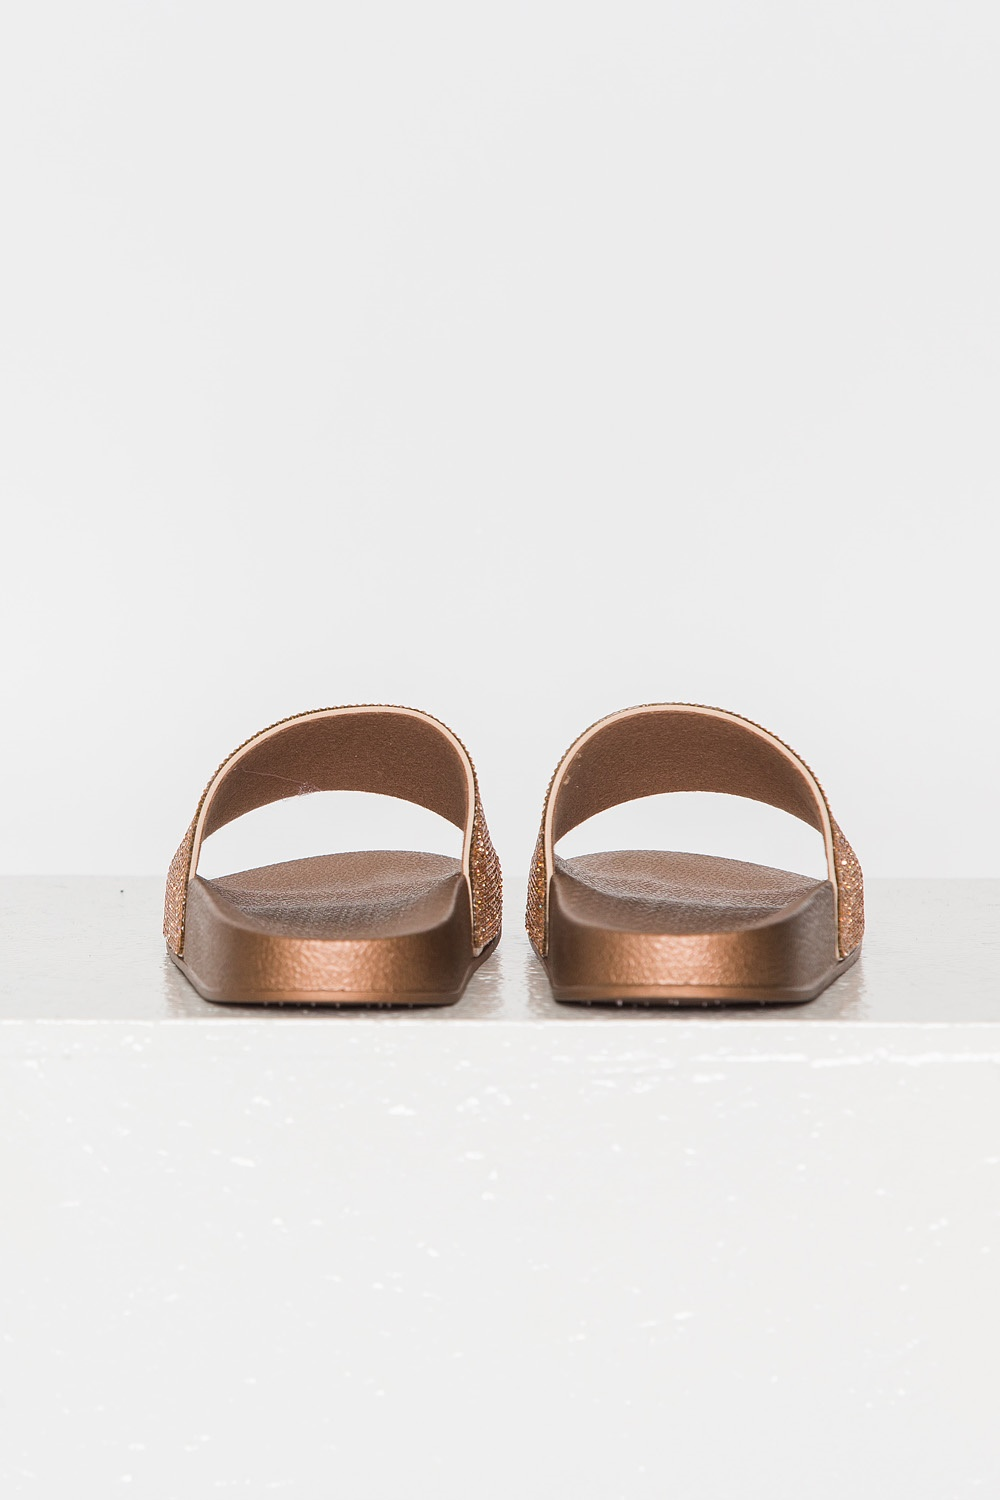 Crystal Slippers - Rose Gold